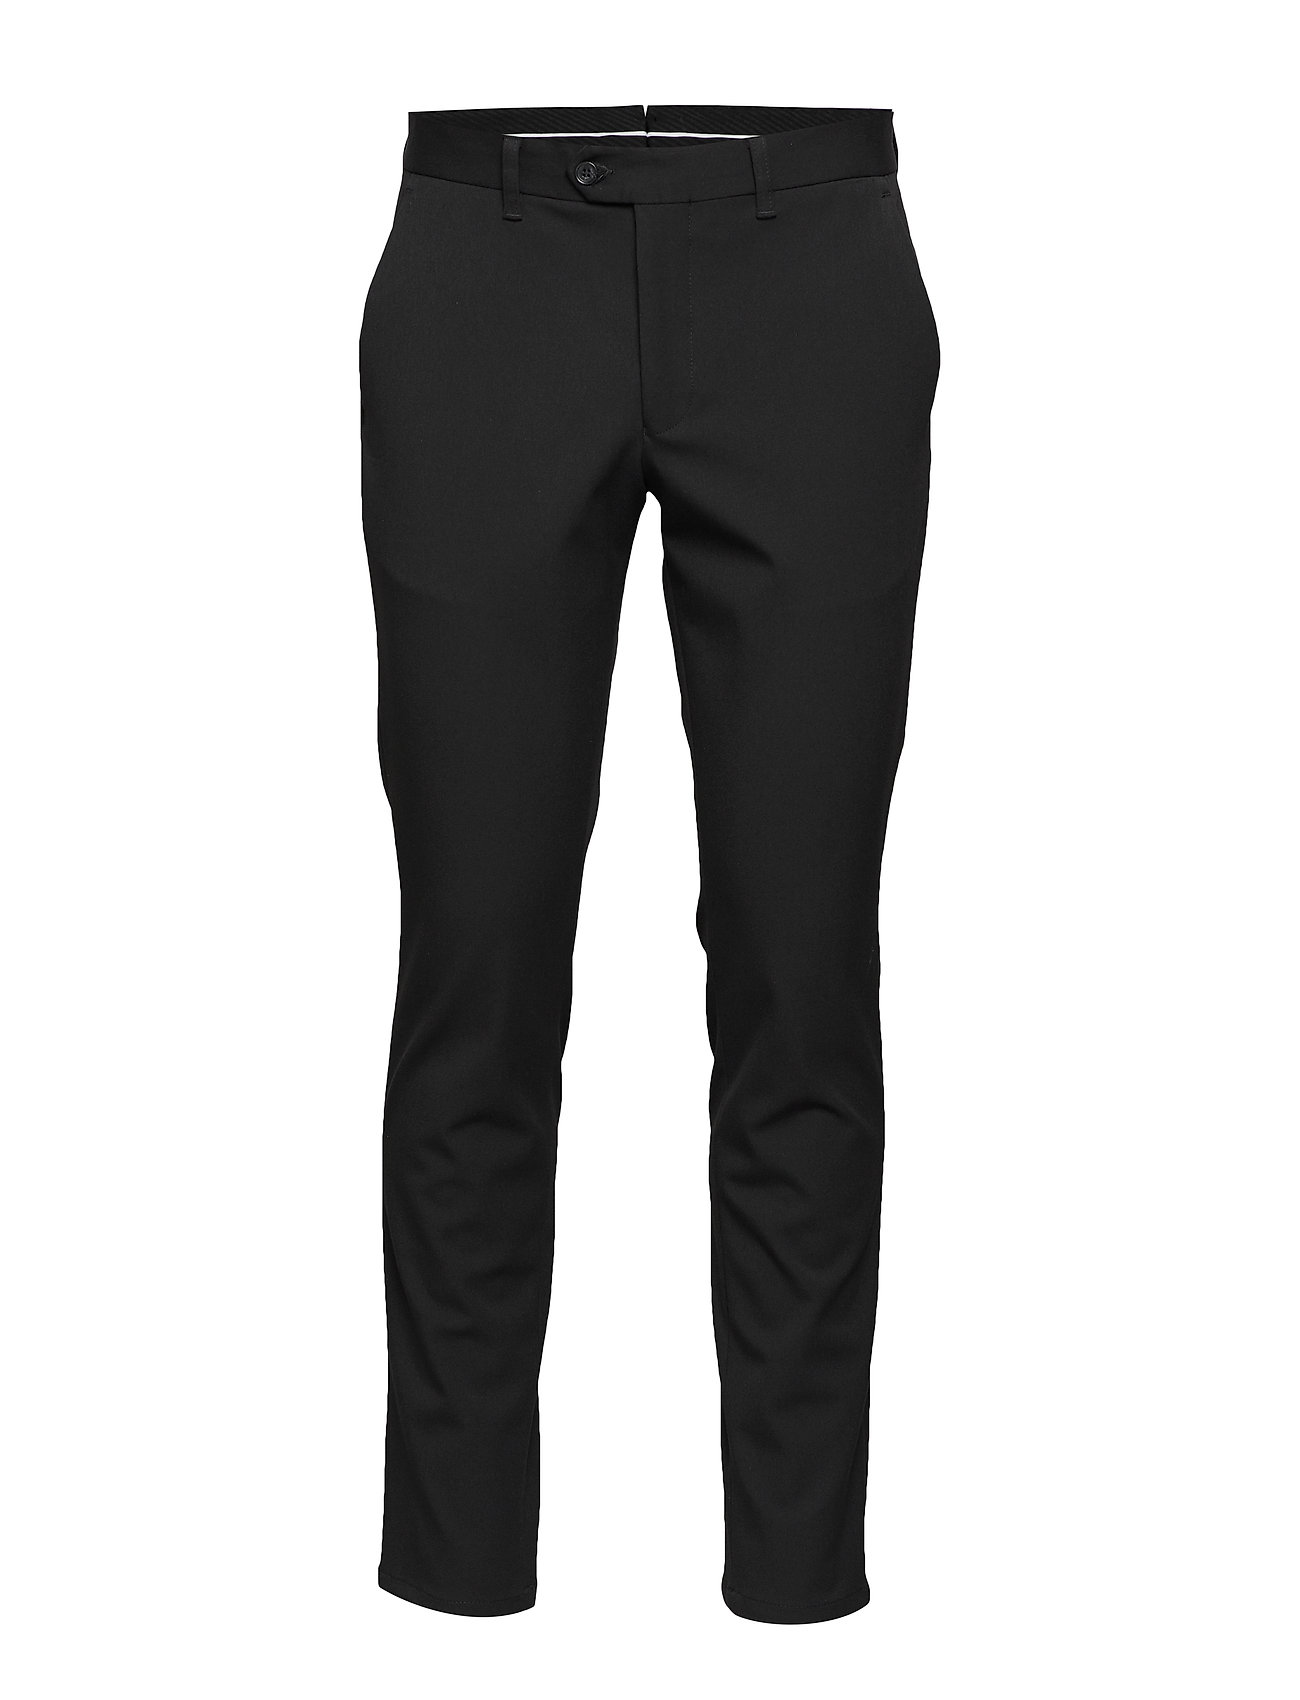 Selected Homme SLHSLIM-CARLO FLEX PANTS B NOOS - BLACK